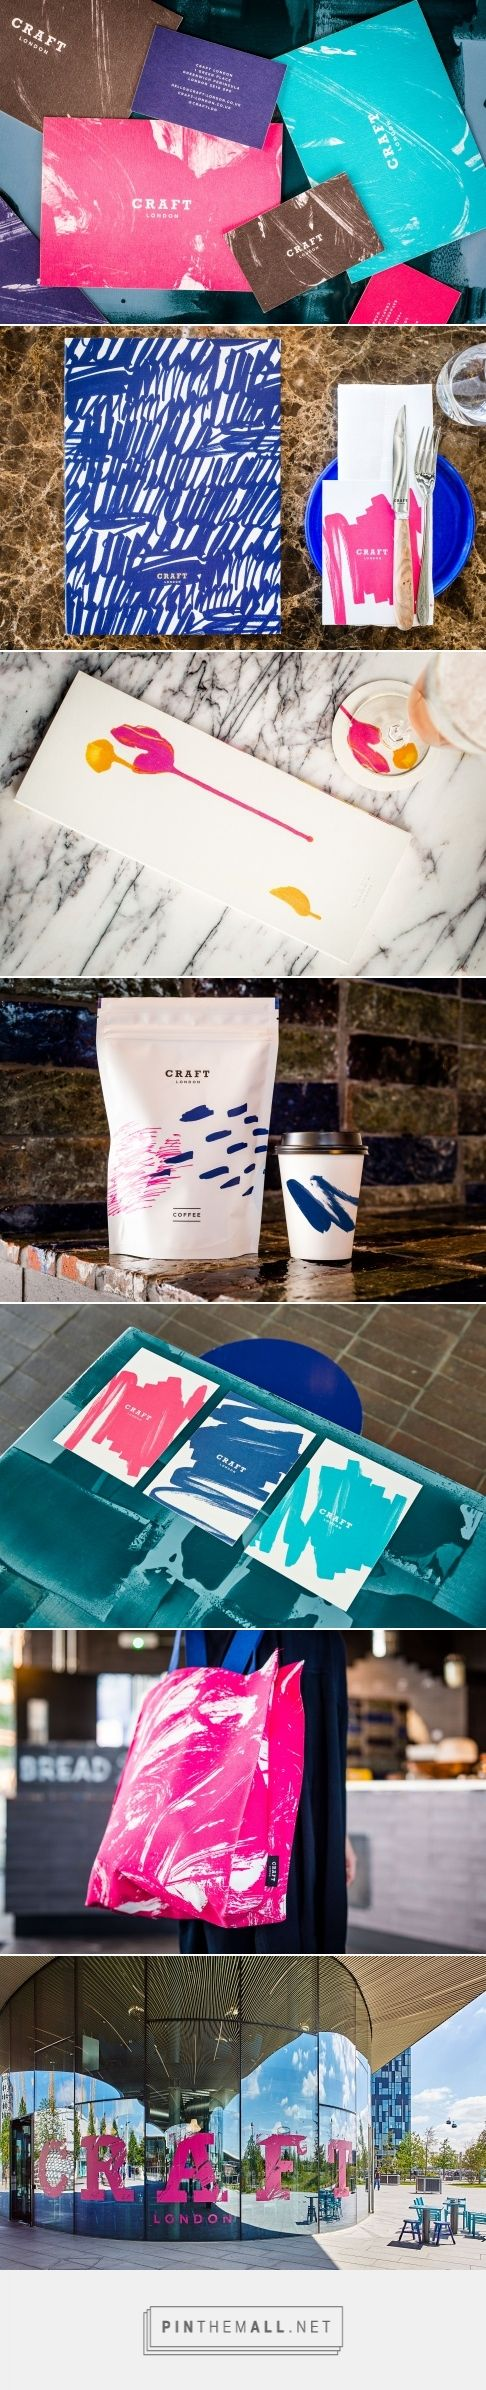 Identity, packaging and branding by Here Design for Craft London curated by Packaging Diva PD. Using a mixture of pink, turquoise, navy and black, the mark-making reflects the authenticity of each unique CRAFT London experience.